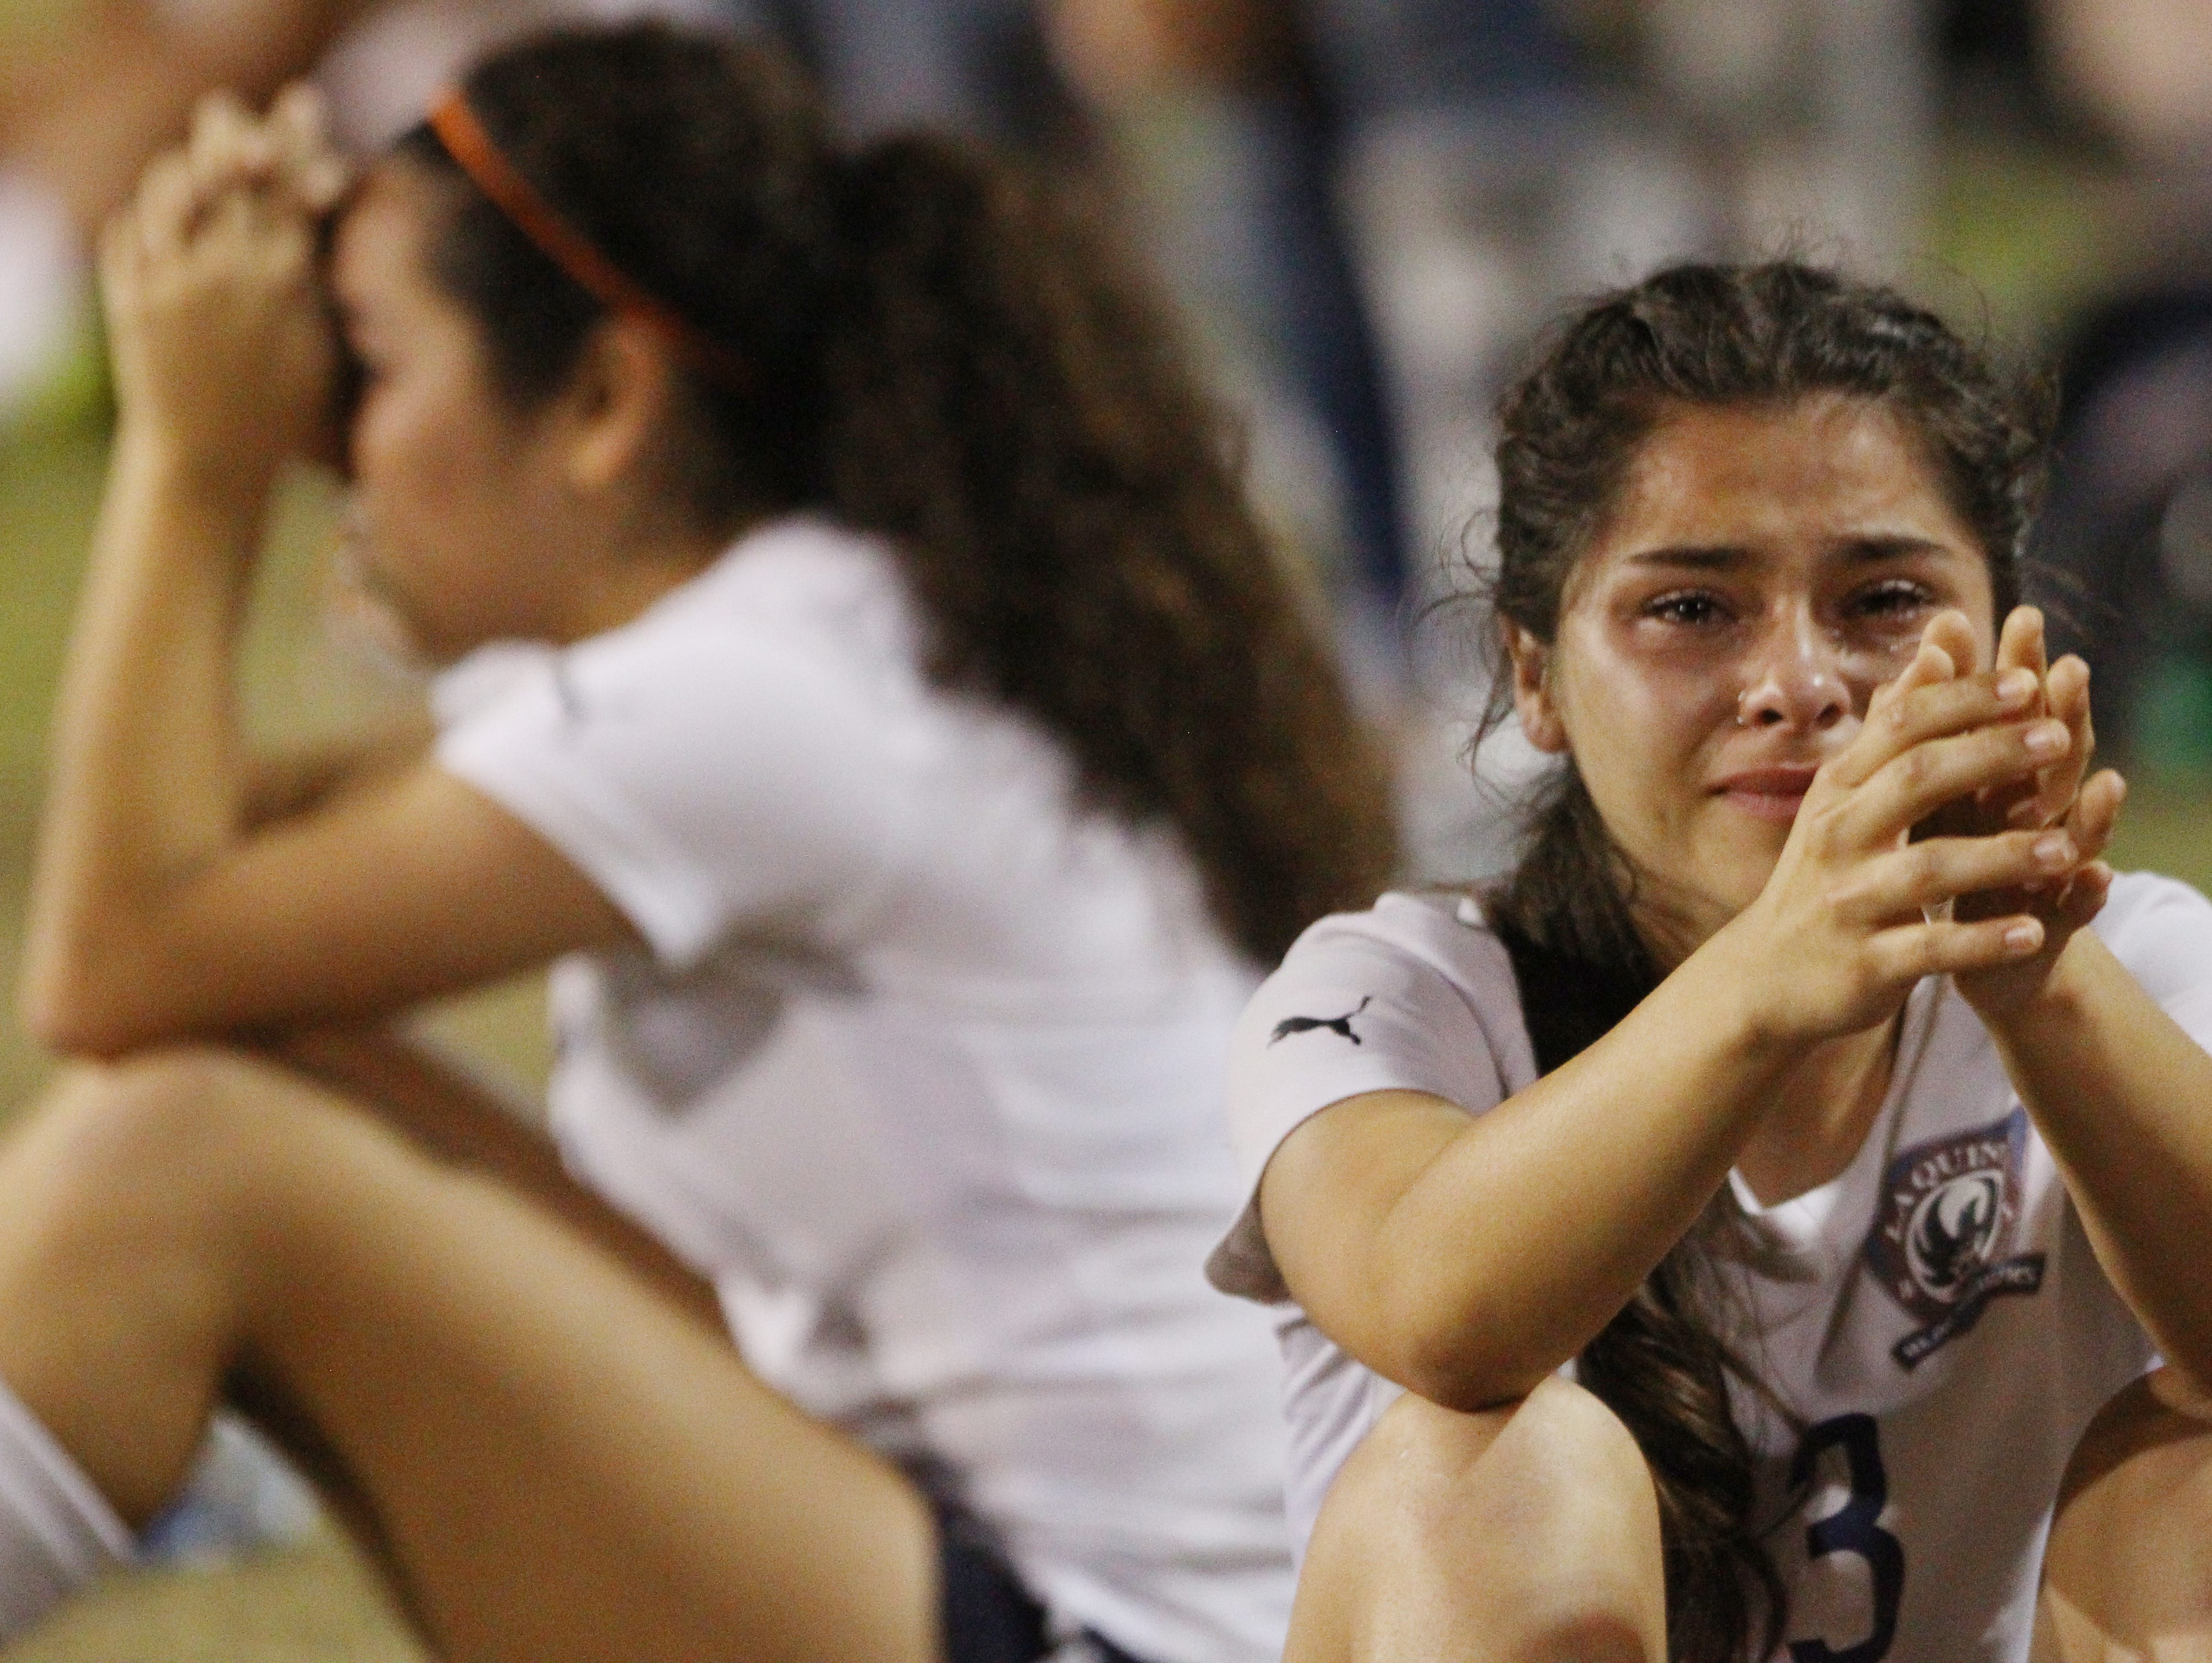 From left, Marcela Gallo and Jiana Guerrero are dejected as their La Quinta High School girls' soccer team is unable to come back down 1 goal against Paloma Valley High School during their second round CIF game at La Quinta on February 21, 2017